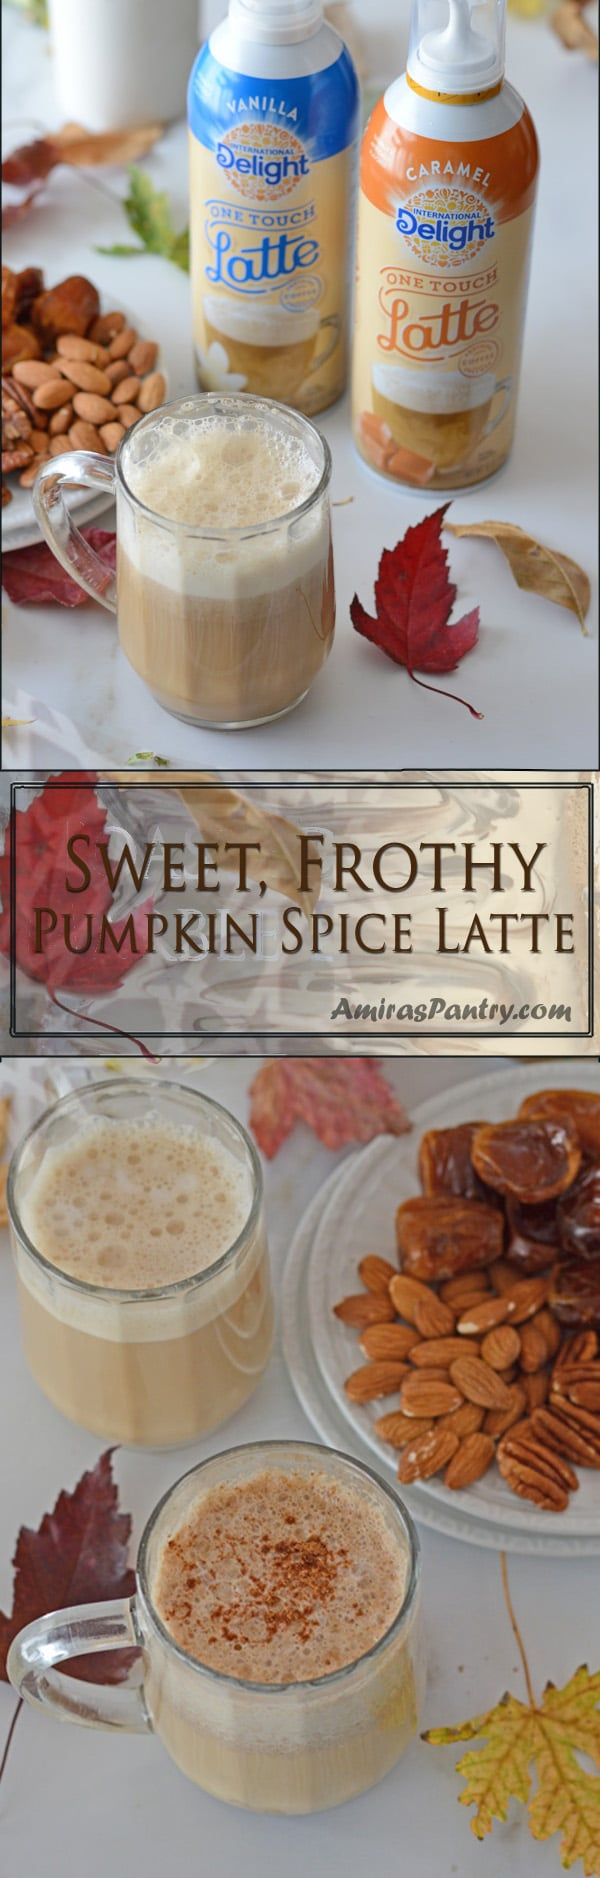 Make your own Pumpkin Spice Caramel Latte with just 3 east steps. #ad @Walmart #LatteMadeEasy